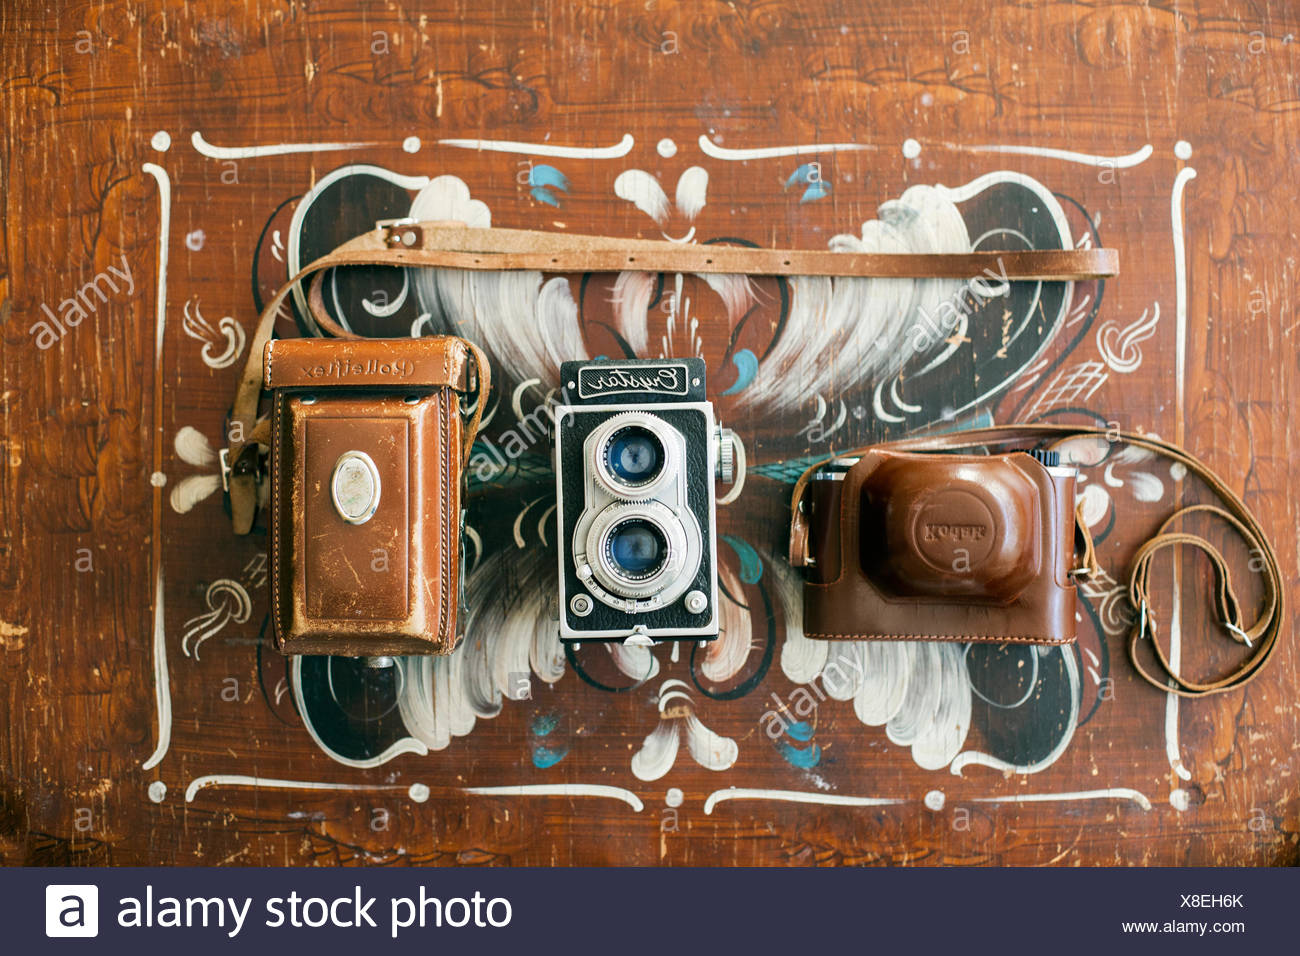 Directly above shot of antique cameras on wooden table - Stock Image